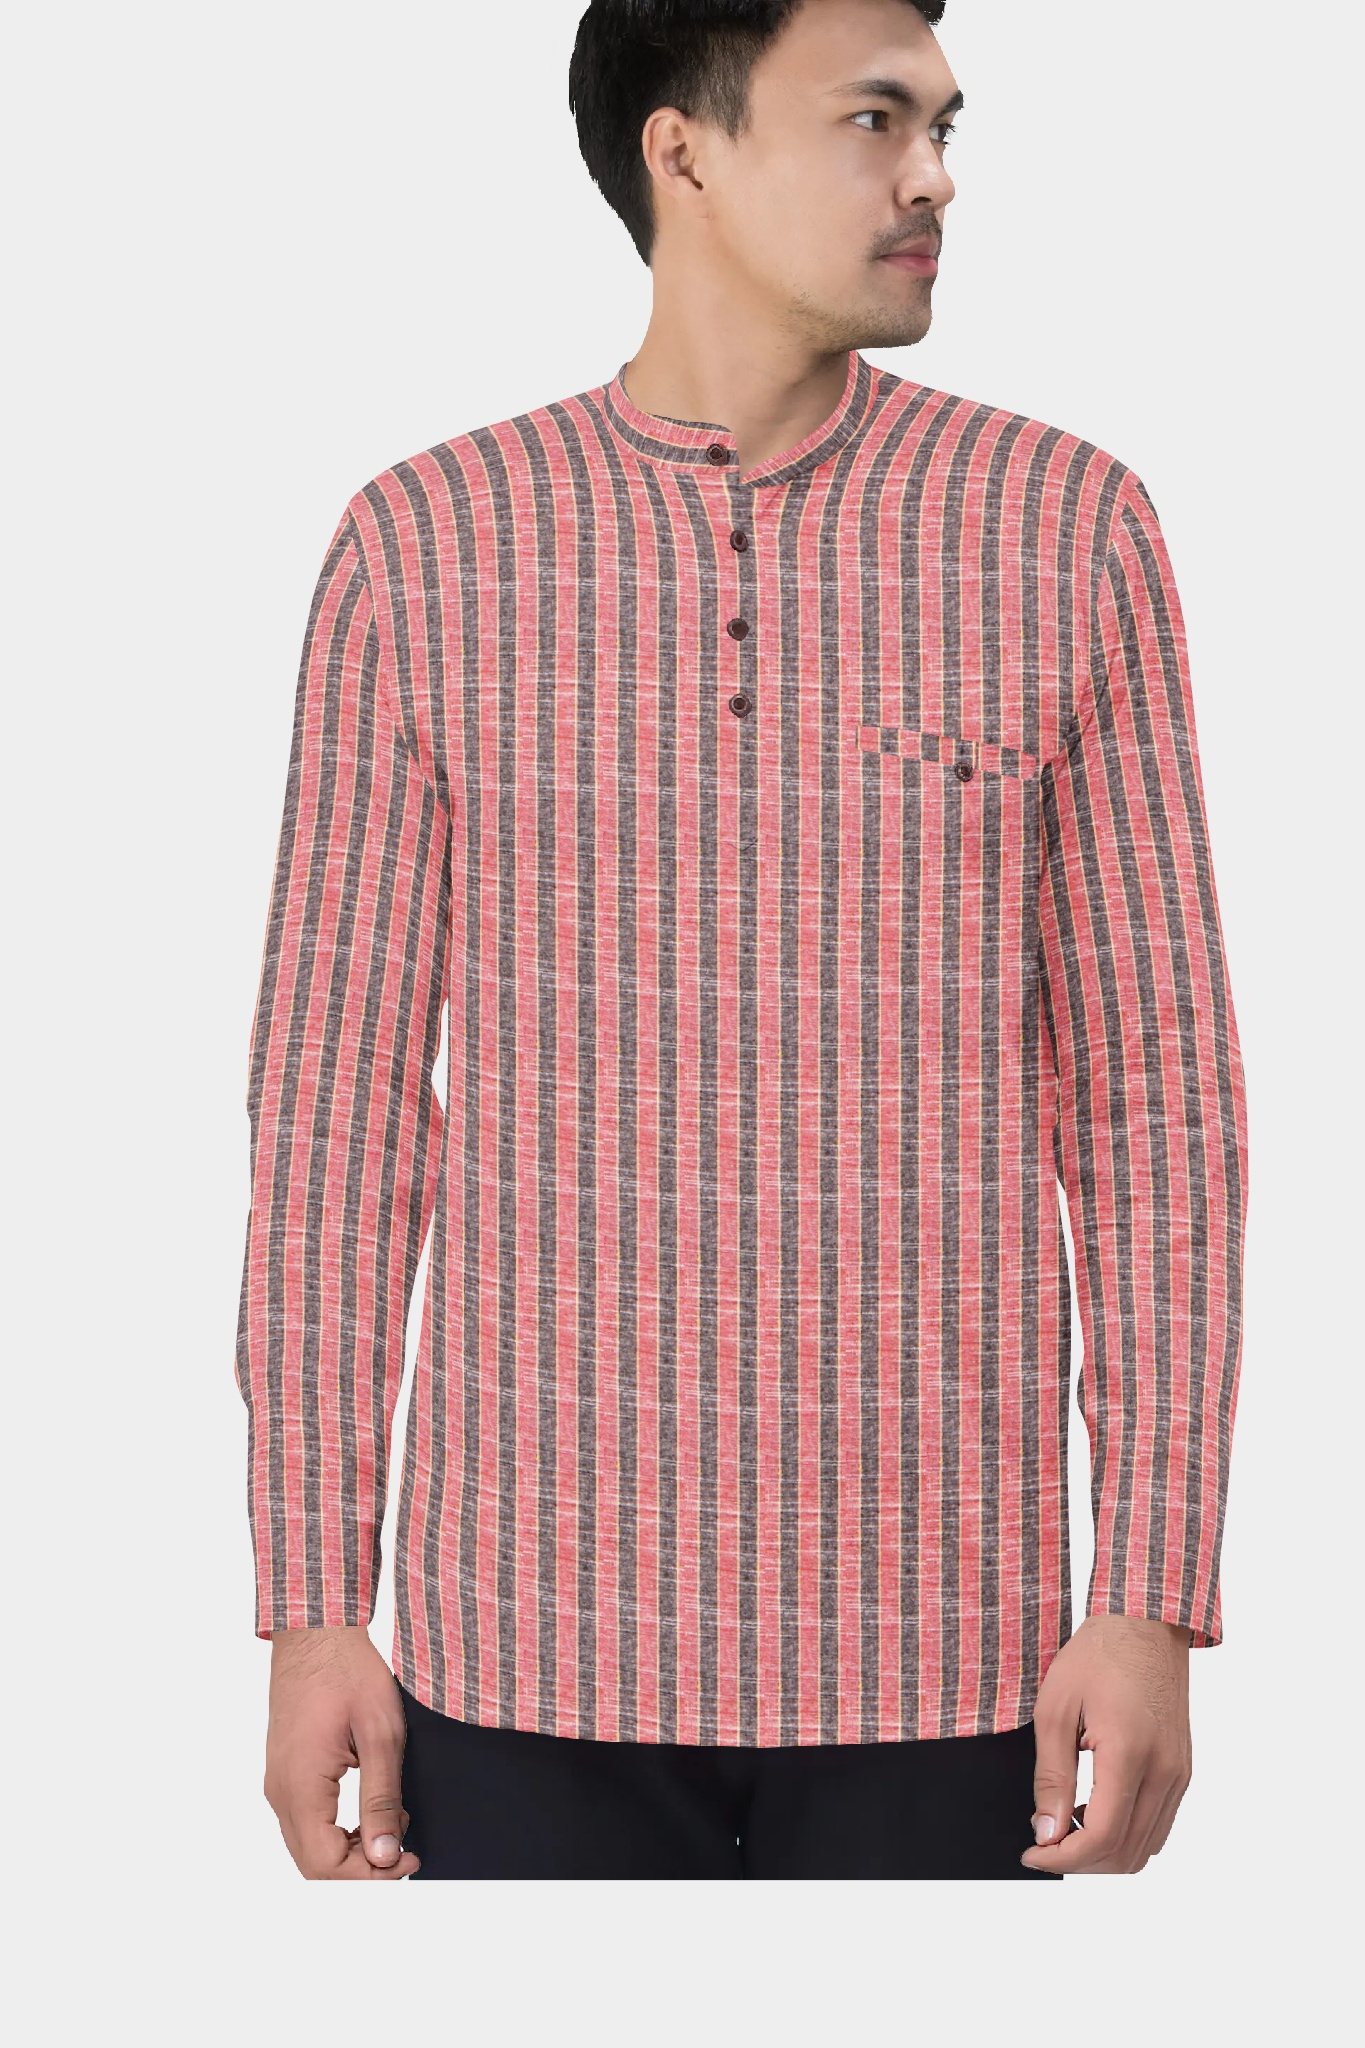 /home/customer/www/fabartcraft.com/public_html/uploadshttps://www.shopolics.com/uploads/images/medium/Pink-Gray-Cotton-Short-Kurta-35438.jpg